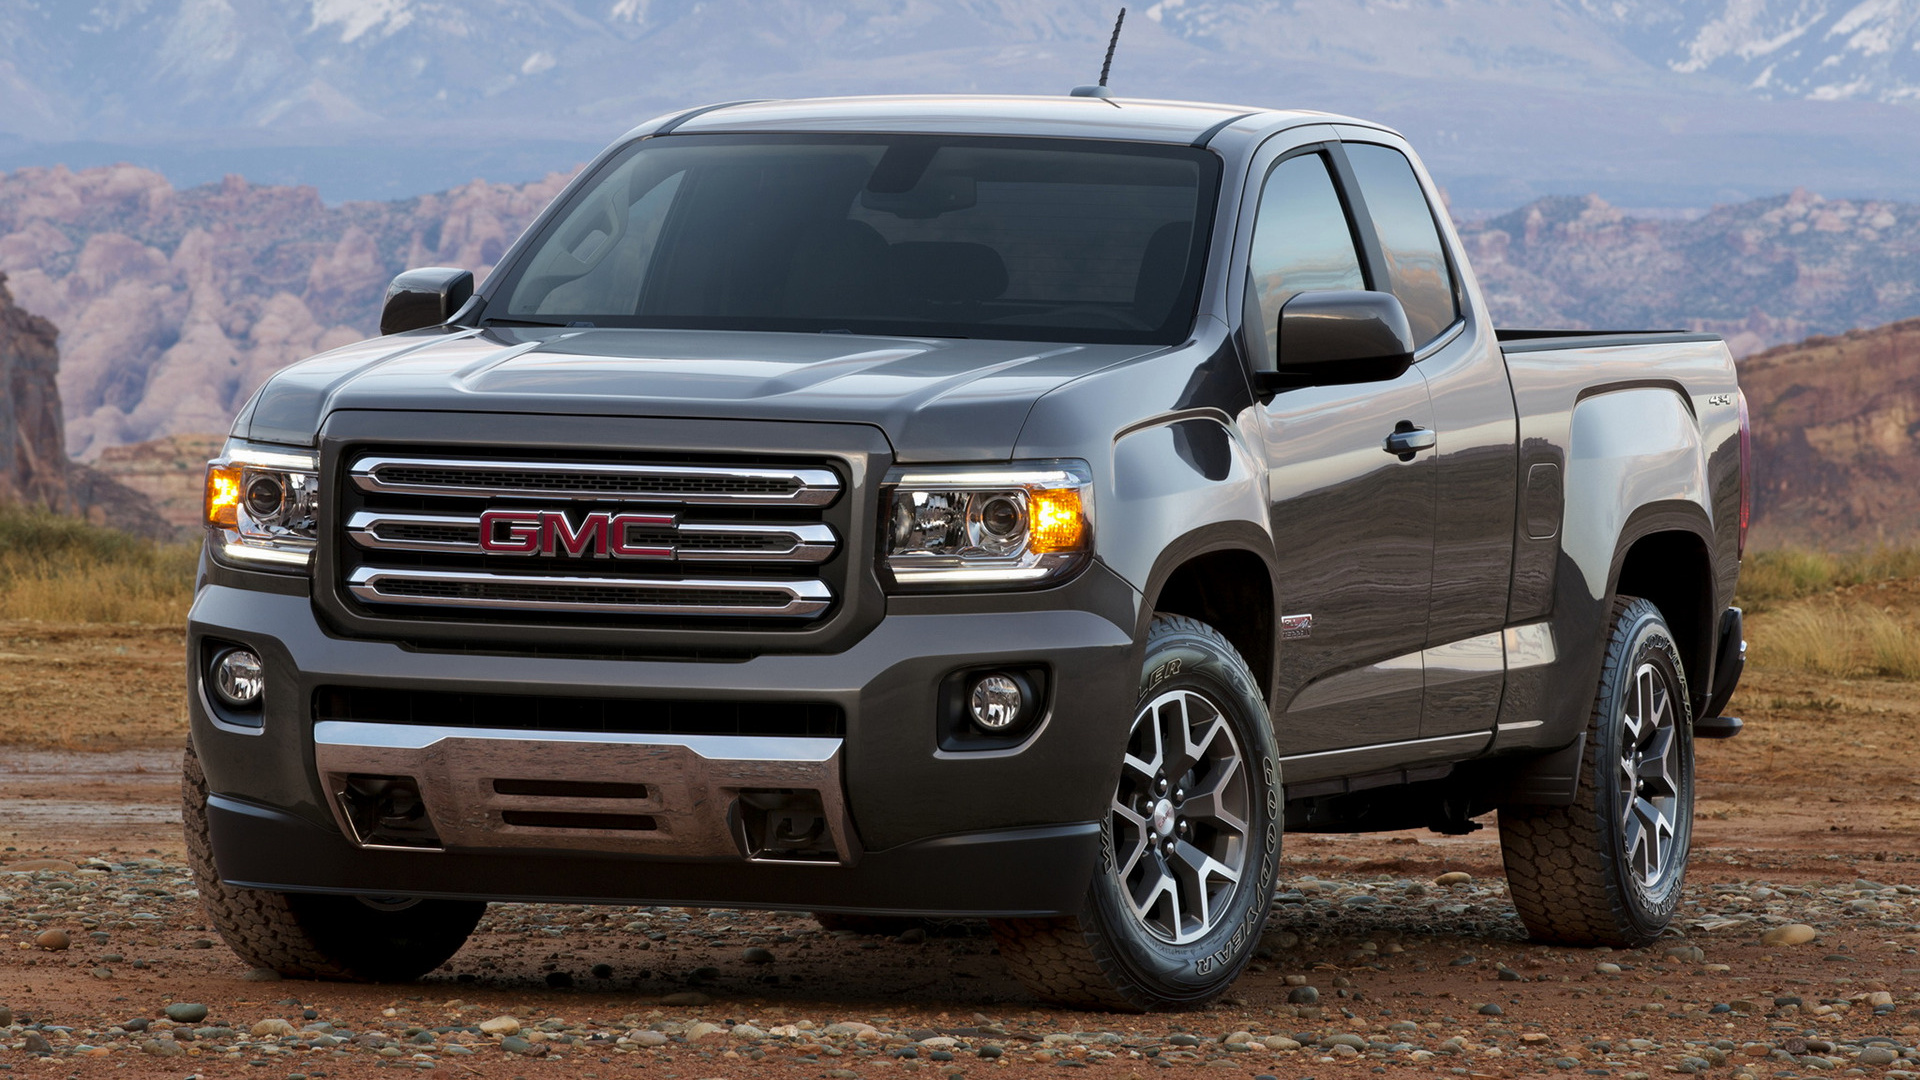 2015 GMC Canyon All Terrain Extended Cab - Wallpapers and ...